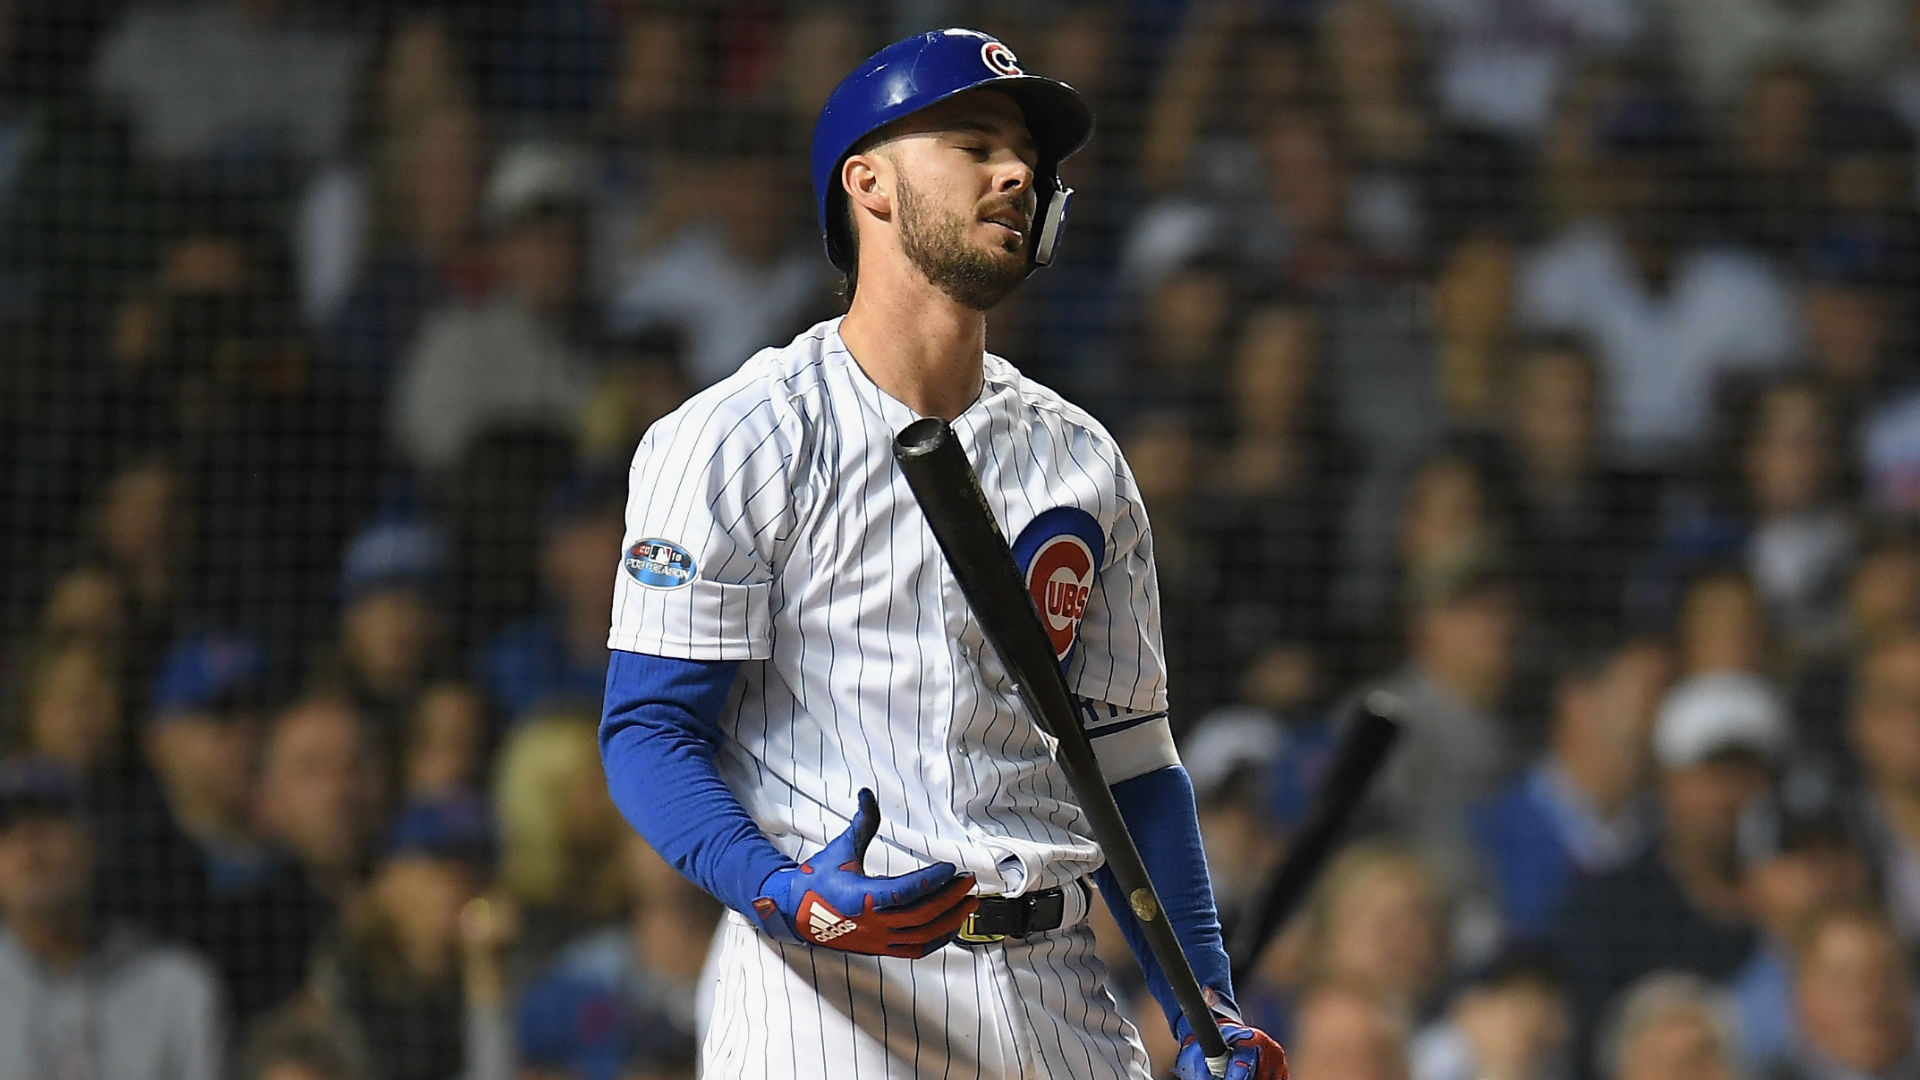 Cubs did not offer Kris Bryant extension worth 'well north of $200 million,' report says